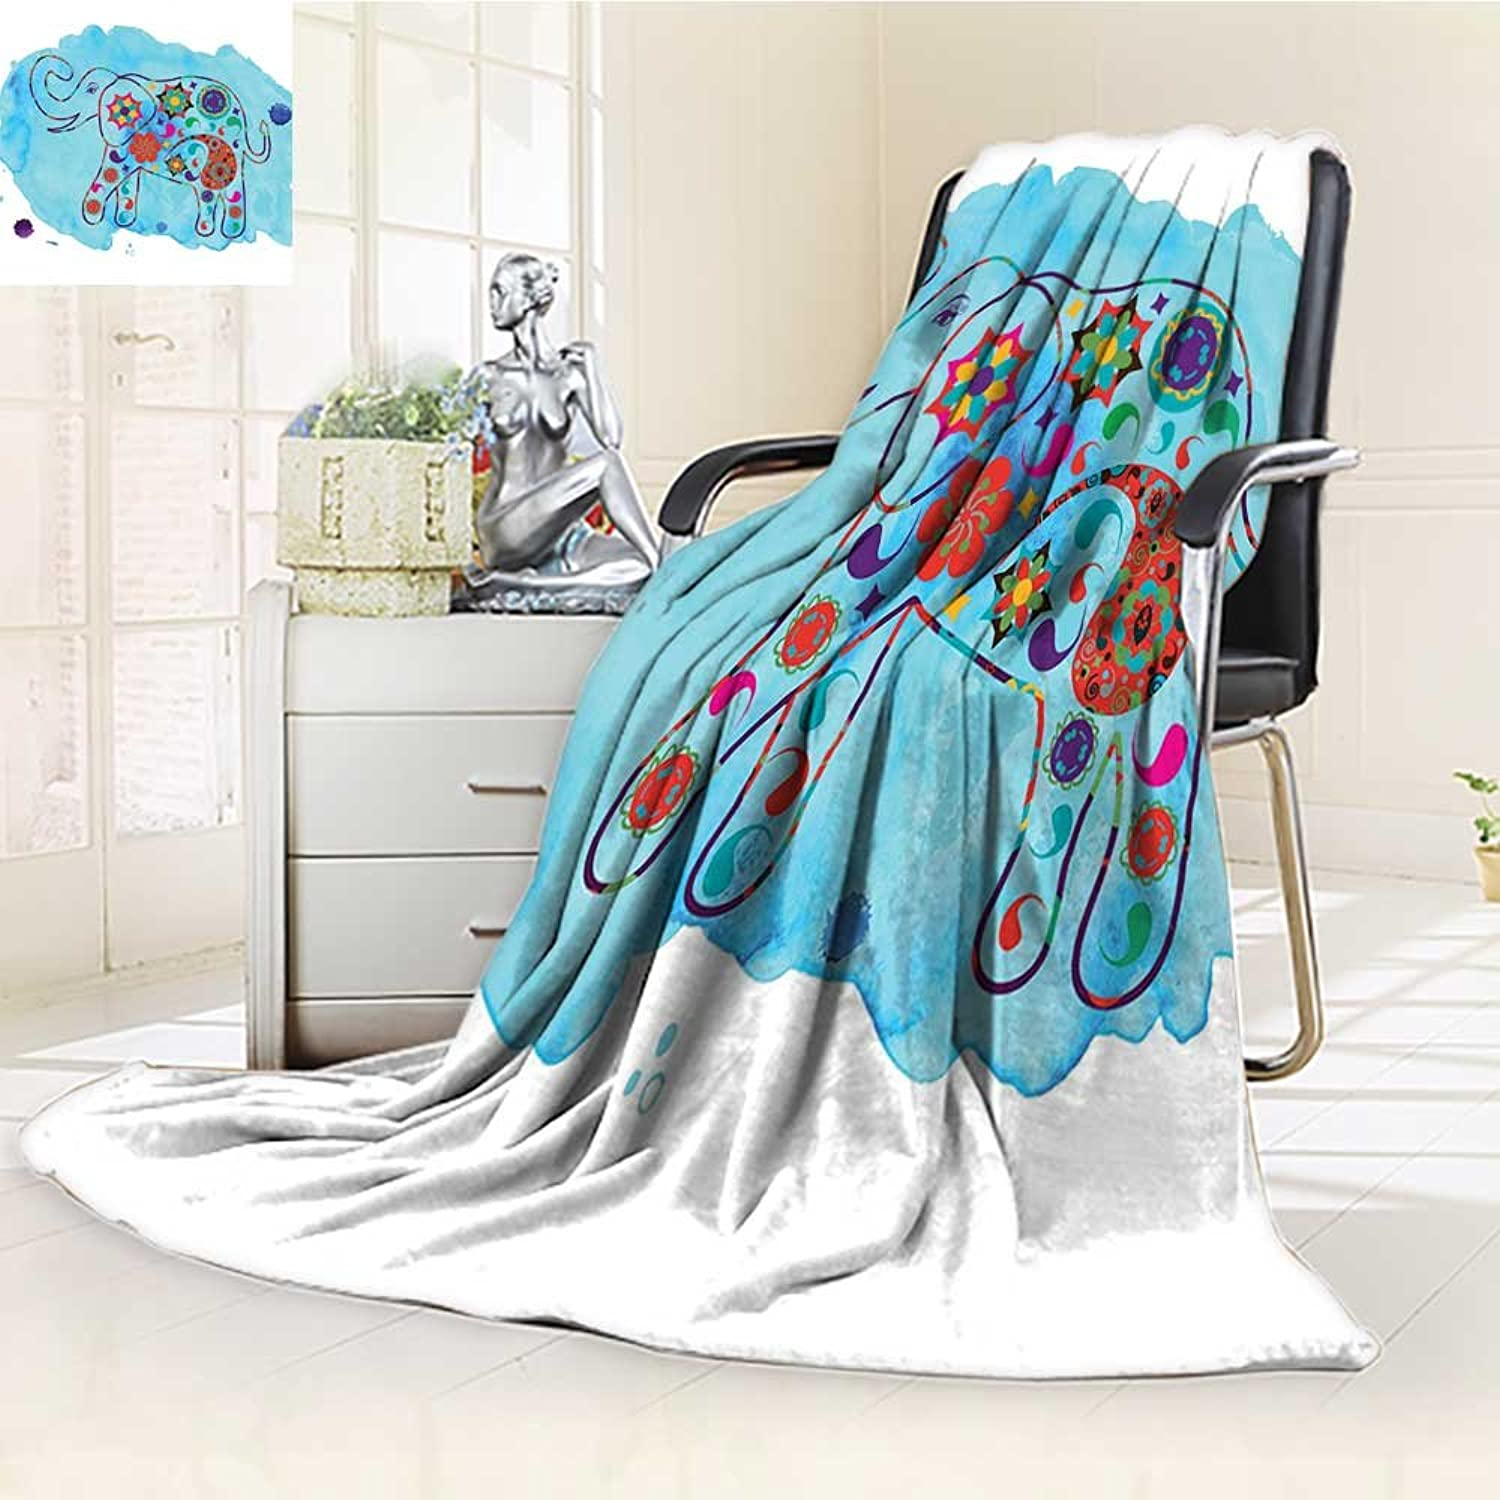 YOYI-HOME Digital Printing Duplex Printed Blanket Watercolor Nature Decorations Asian Thailand Elephant colord in Paisleys Summer Quilt Comforter  W59 x H39.5